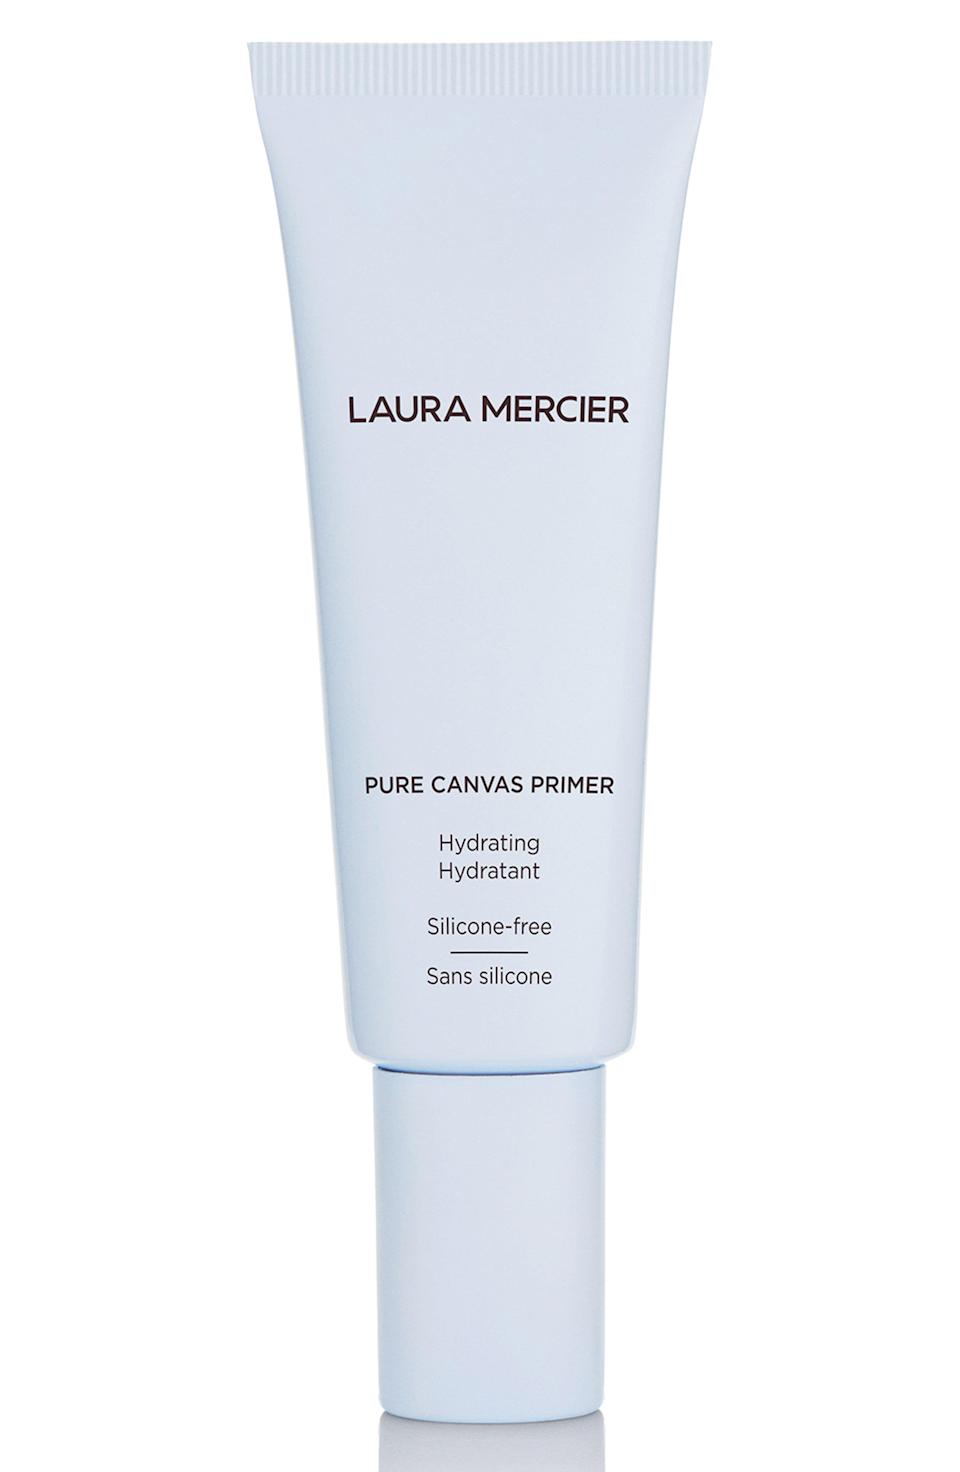 "<p><strong>Laura Mercier </strong></p><p>nordstrom.com</p><p><strong>$39.00</strong></p><p><a href=""https://go.redirectingat.com?id=74968X1596630&url=https%3A%2F%2Fwww.nordstrom.com%2Fs%2Flaura-mercier-hydrating-pure-canvas-primer%2F5481804&sref=https%3A%2F%2Fwww.harpersbazaar.com%2Fbeauty%2Fmakeup%2Fg36301952%2Fsilicone-free-makeup-primers%2F"" rel=""nofollow noopener"" target=""_blank"" data-ylk=""slk:Shop Now"" class=""link rapid-noclick-resp"">Shop Now</a></p><p>Laura Mercier's Pure Canvas Primer might be one of the most well known silicone-free formulas out there. It uses olive extract for skin-smoothing, and feels like an extra layer of skincare once you apply it.</p>"